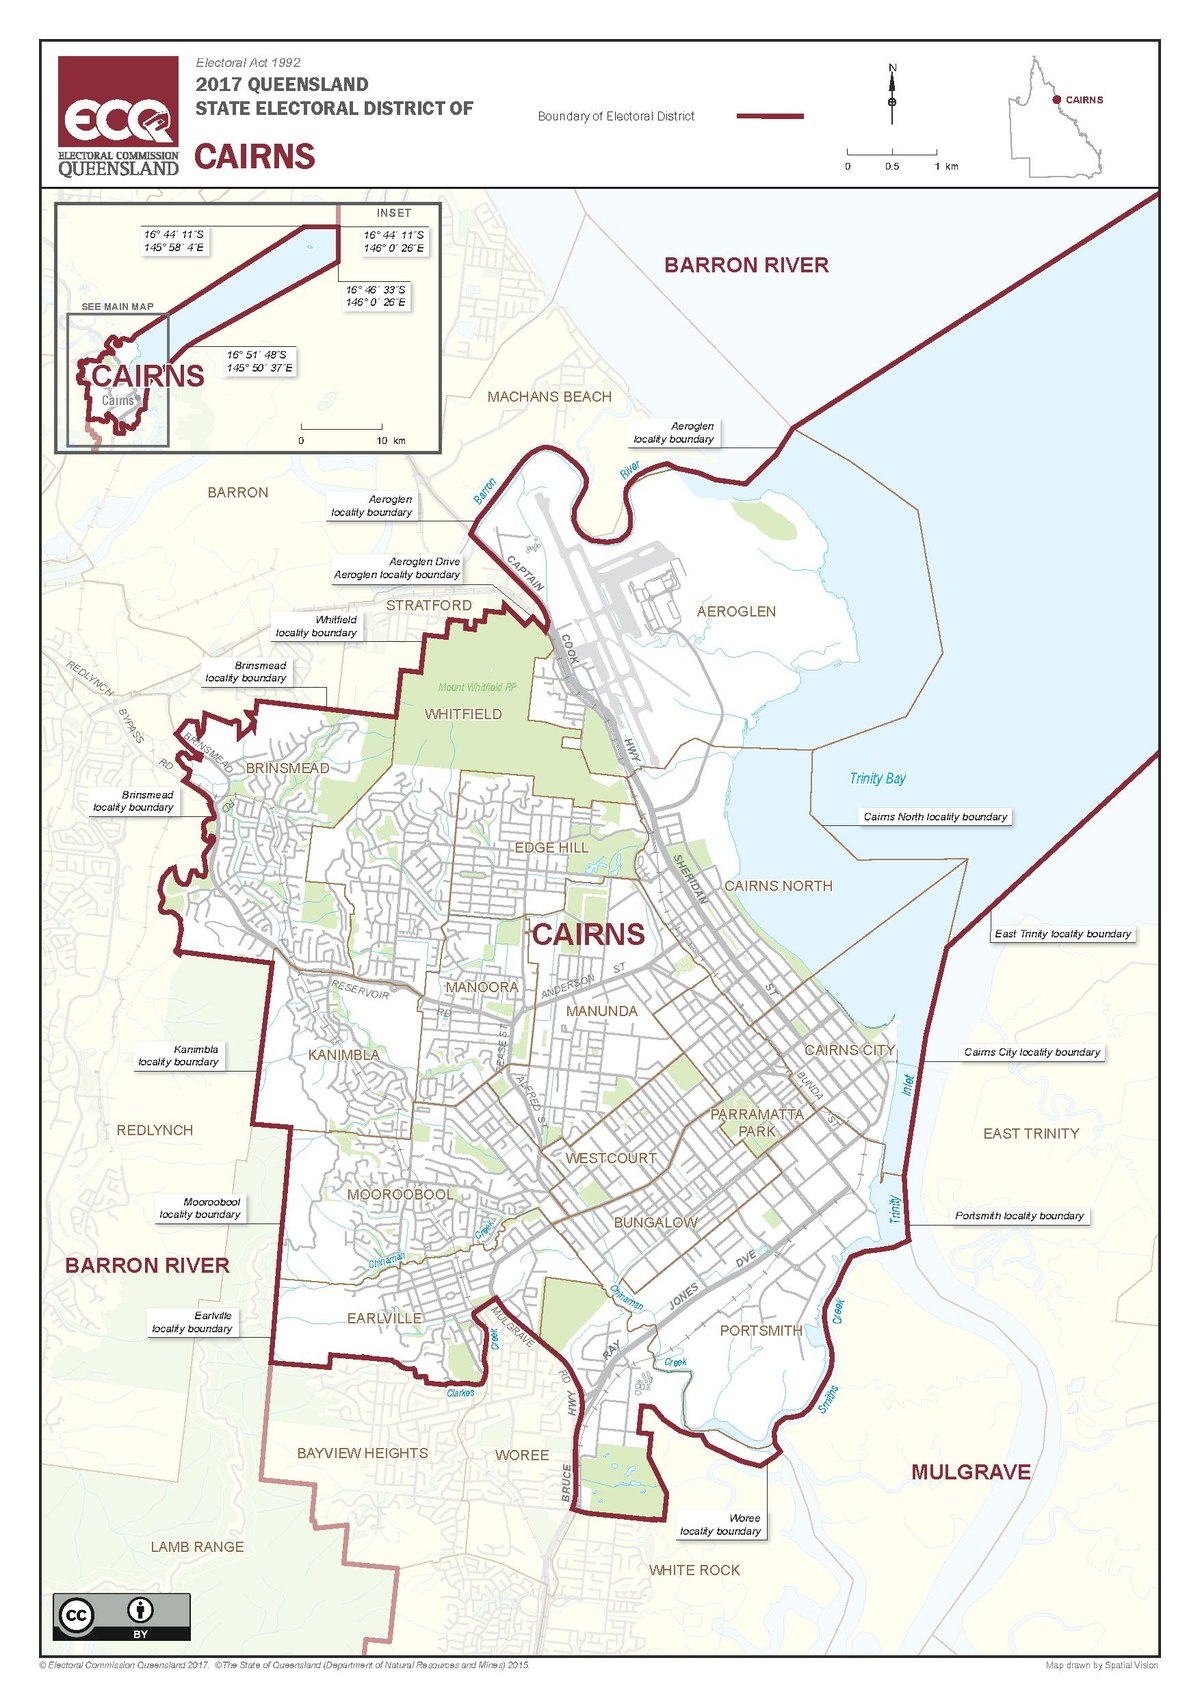 Electoral districting in the city of